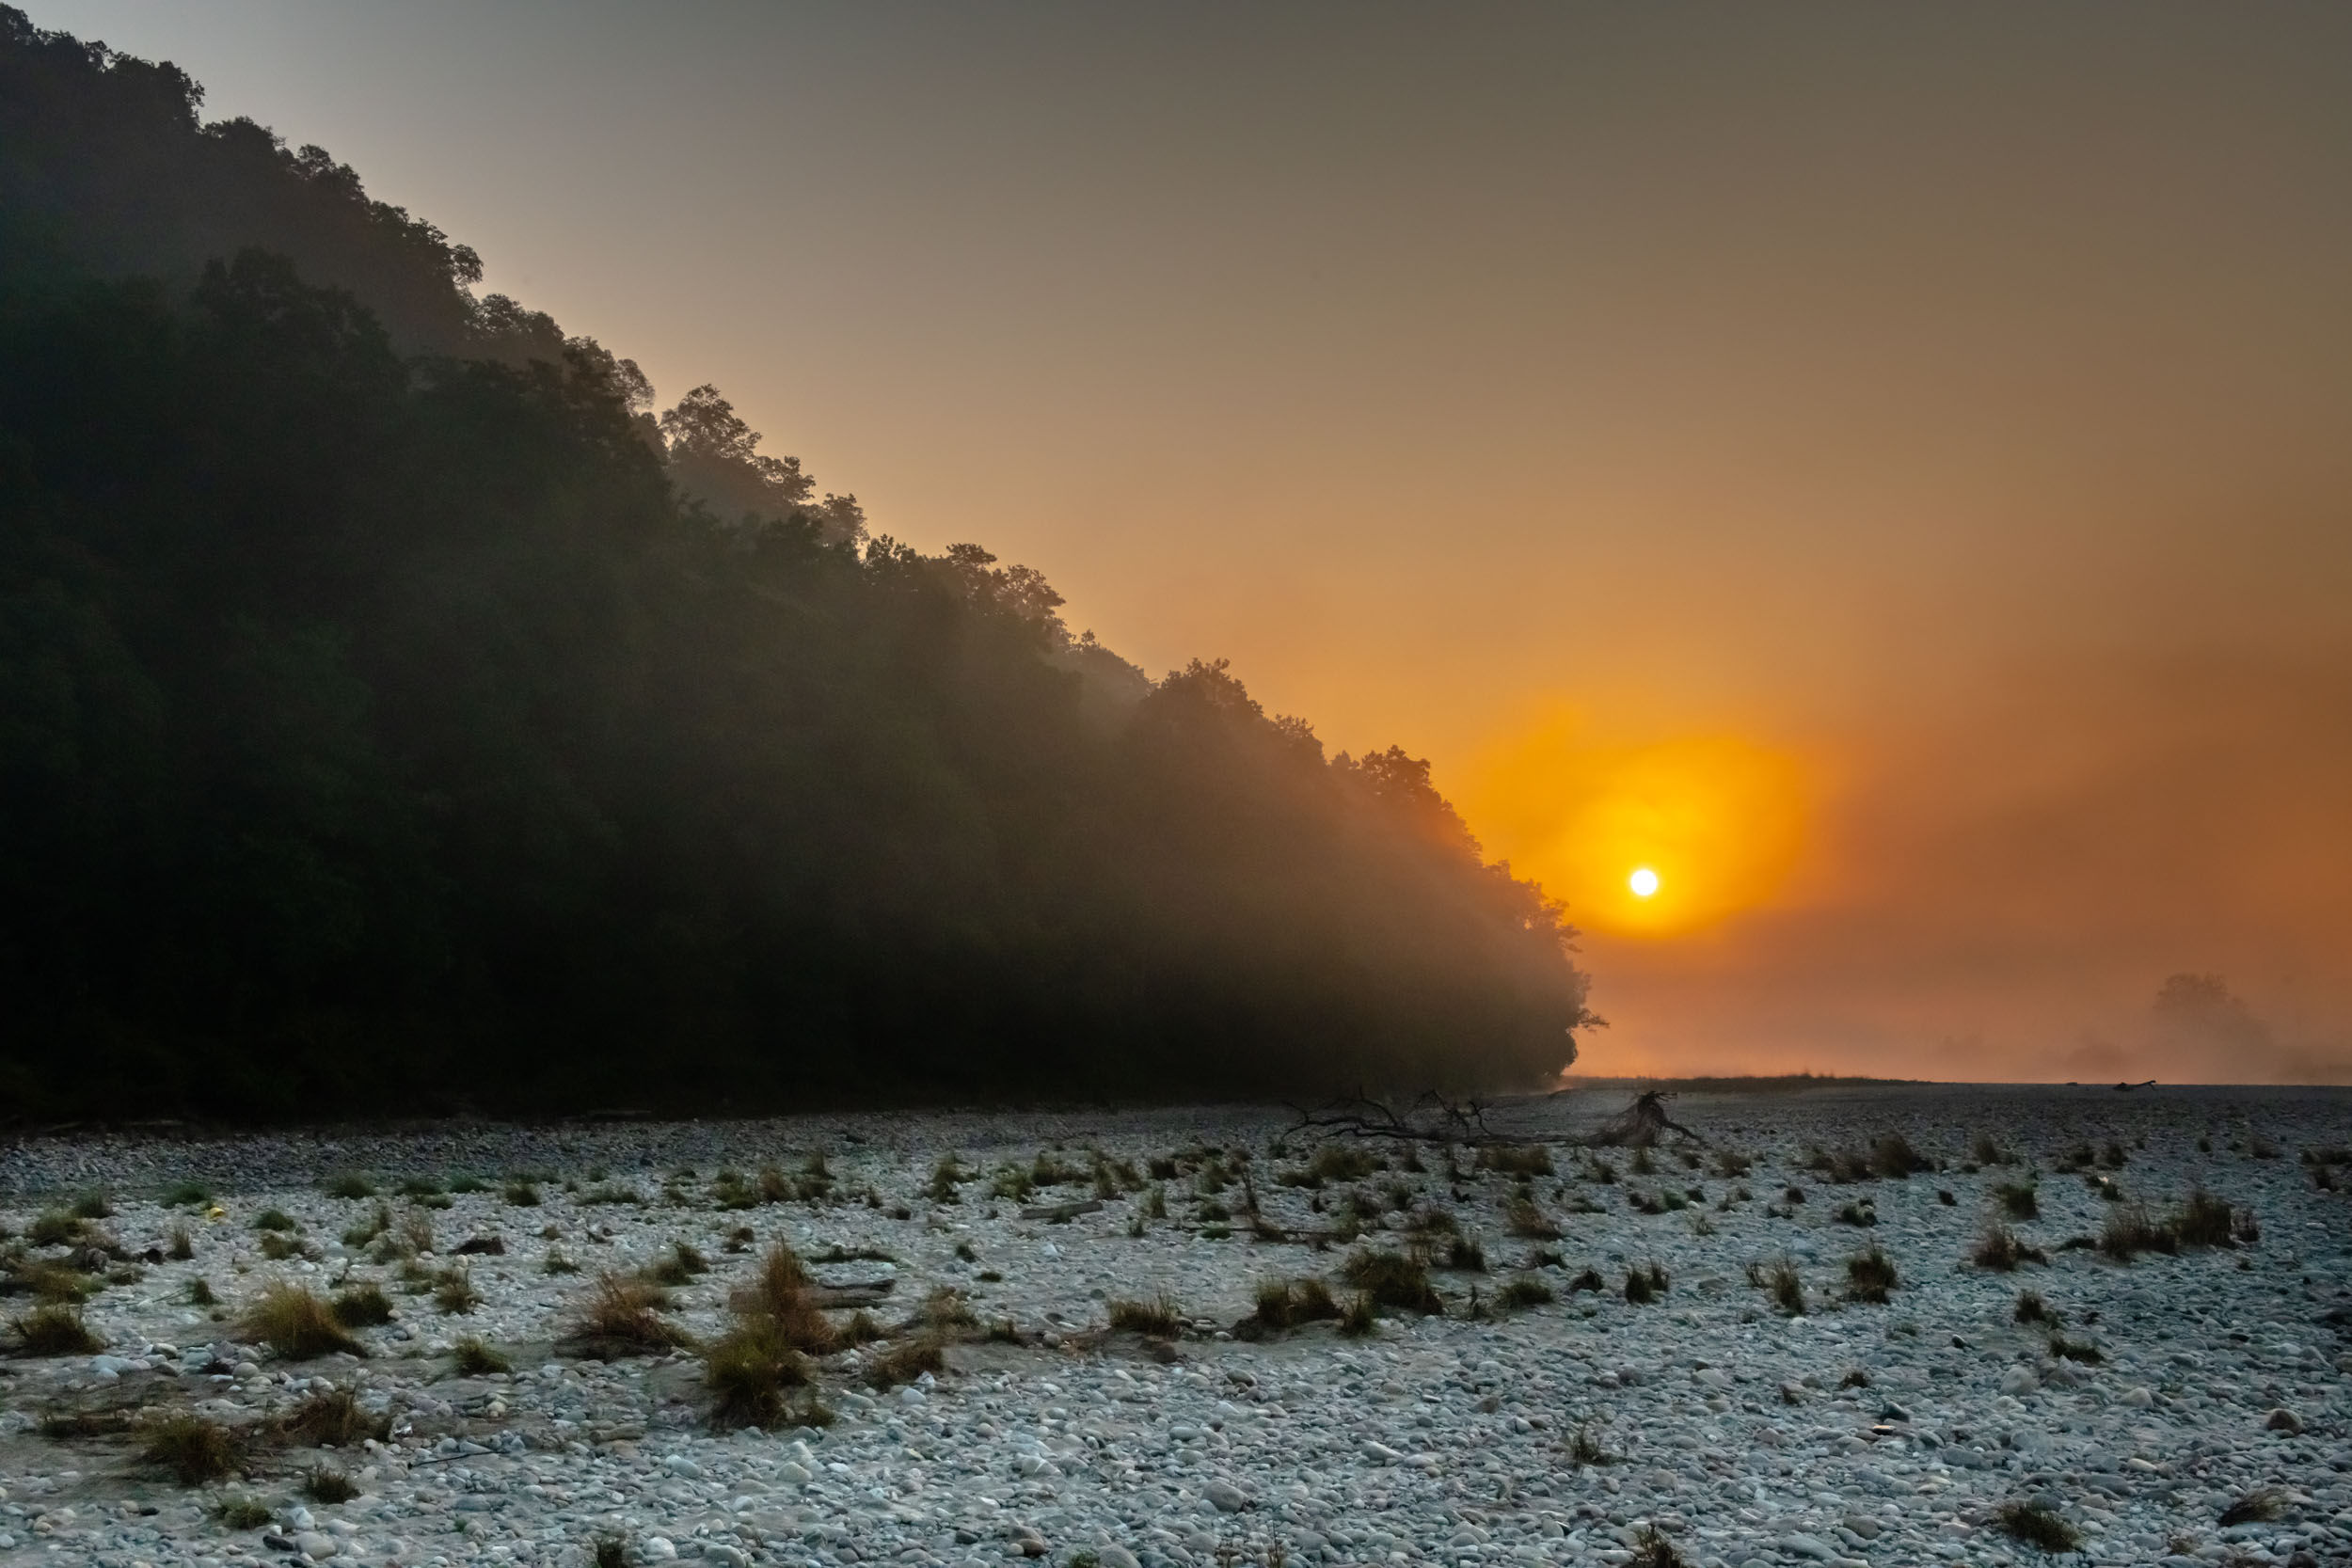 Sunrise on banks of Ramganga river